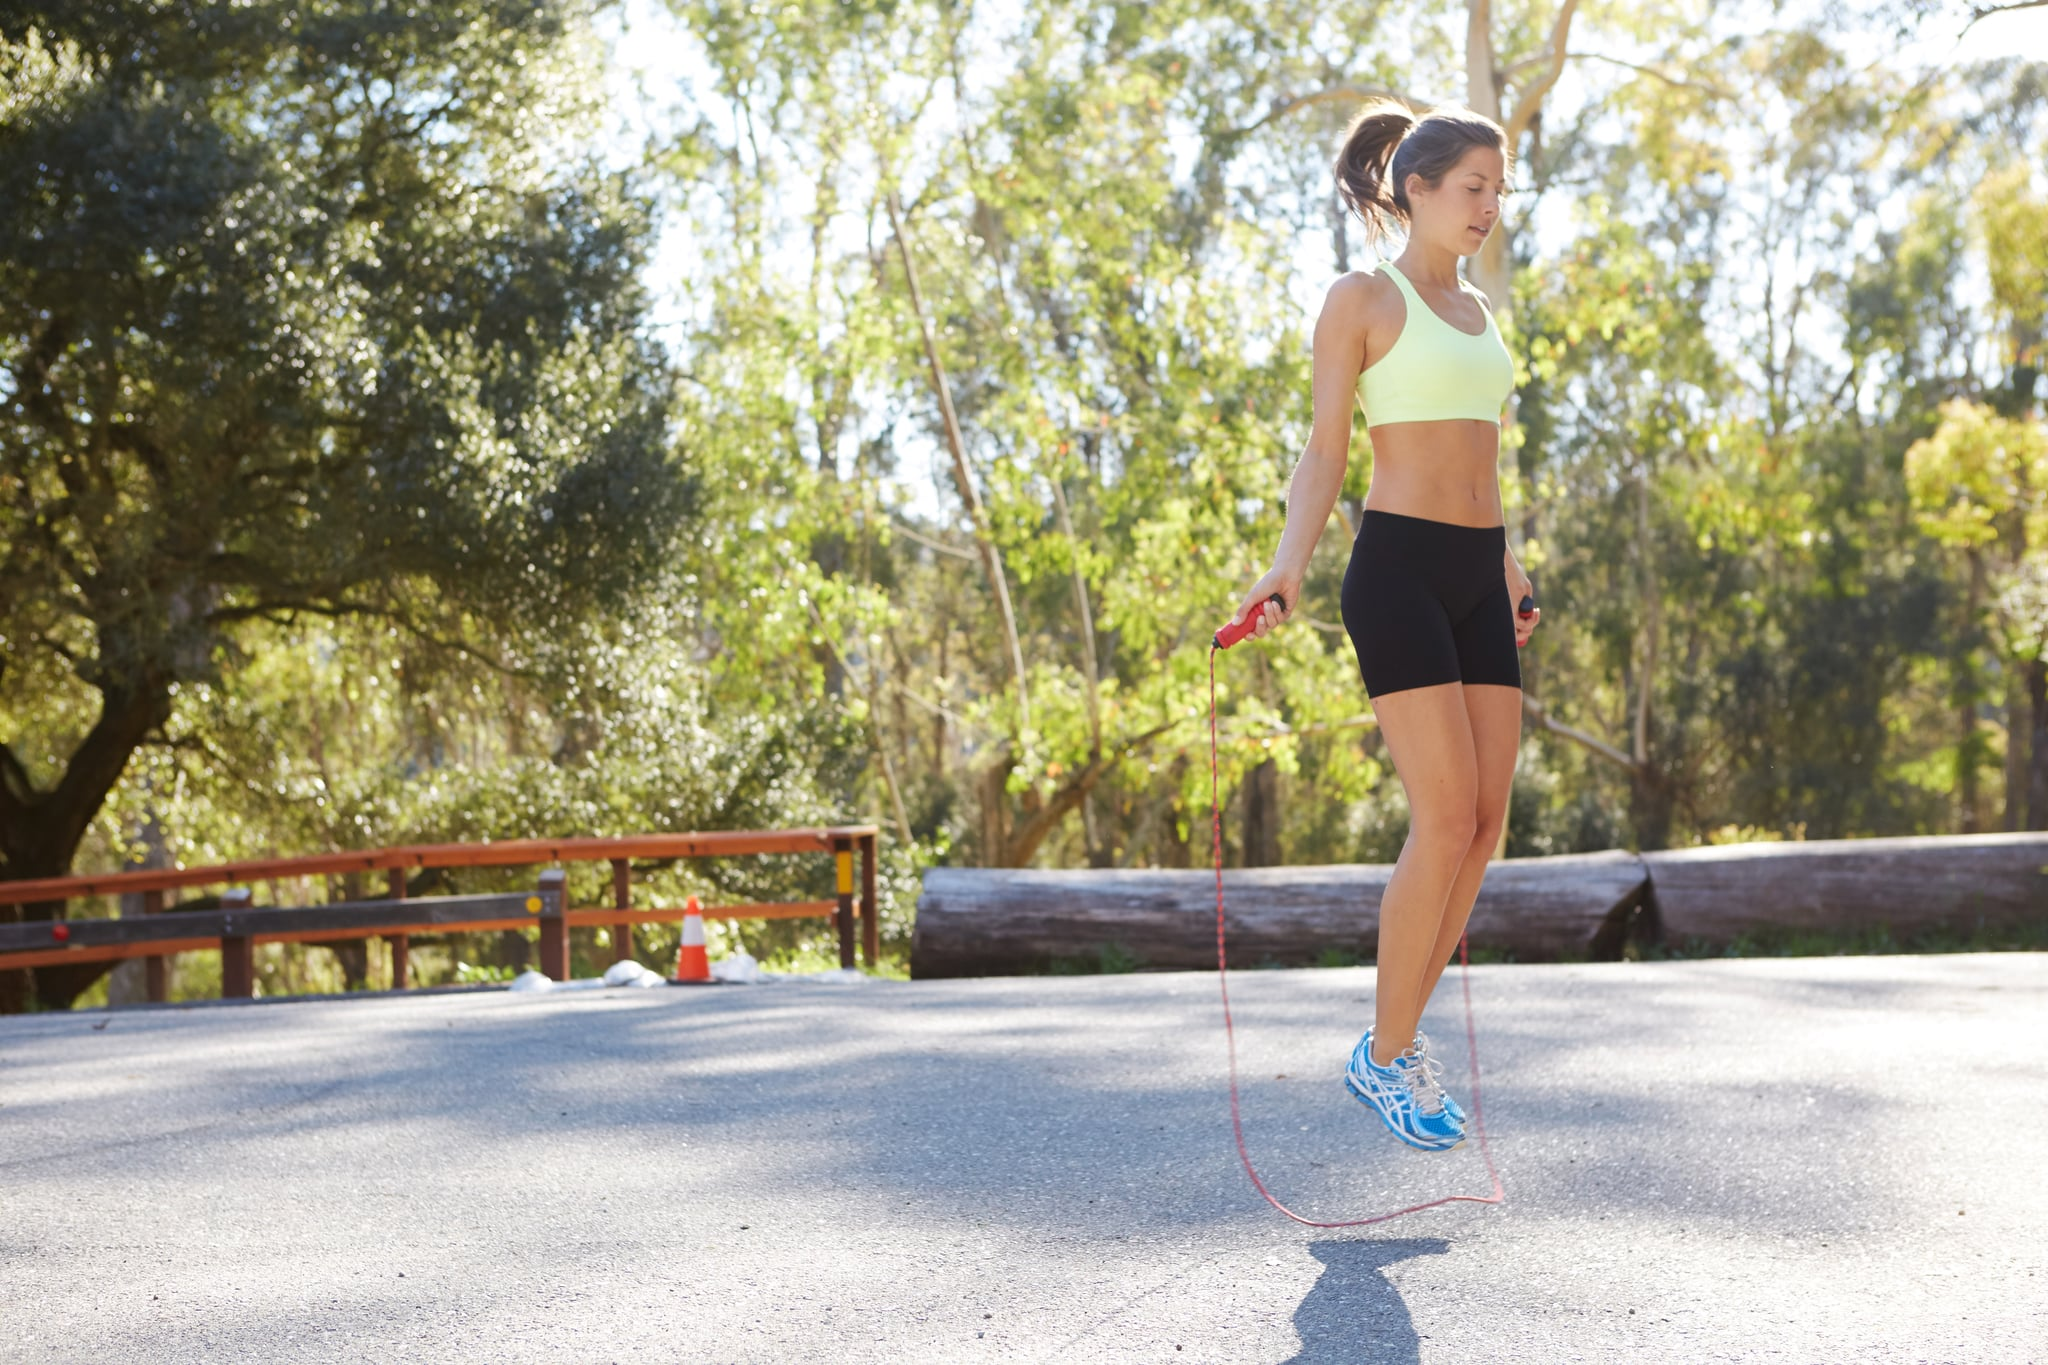 Try This Cardio Workout If You're Trying to Lose Weight